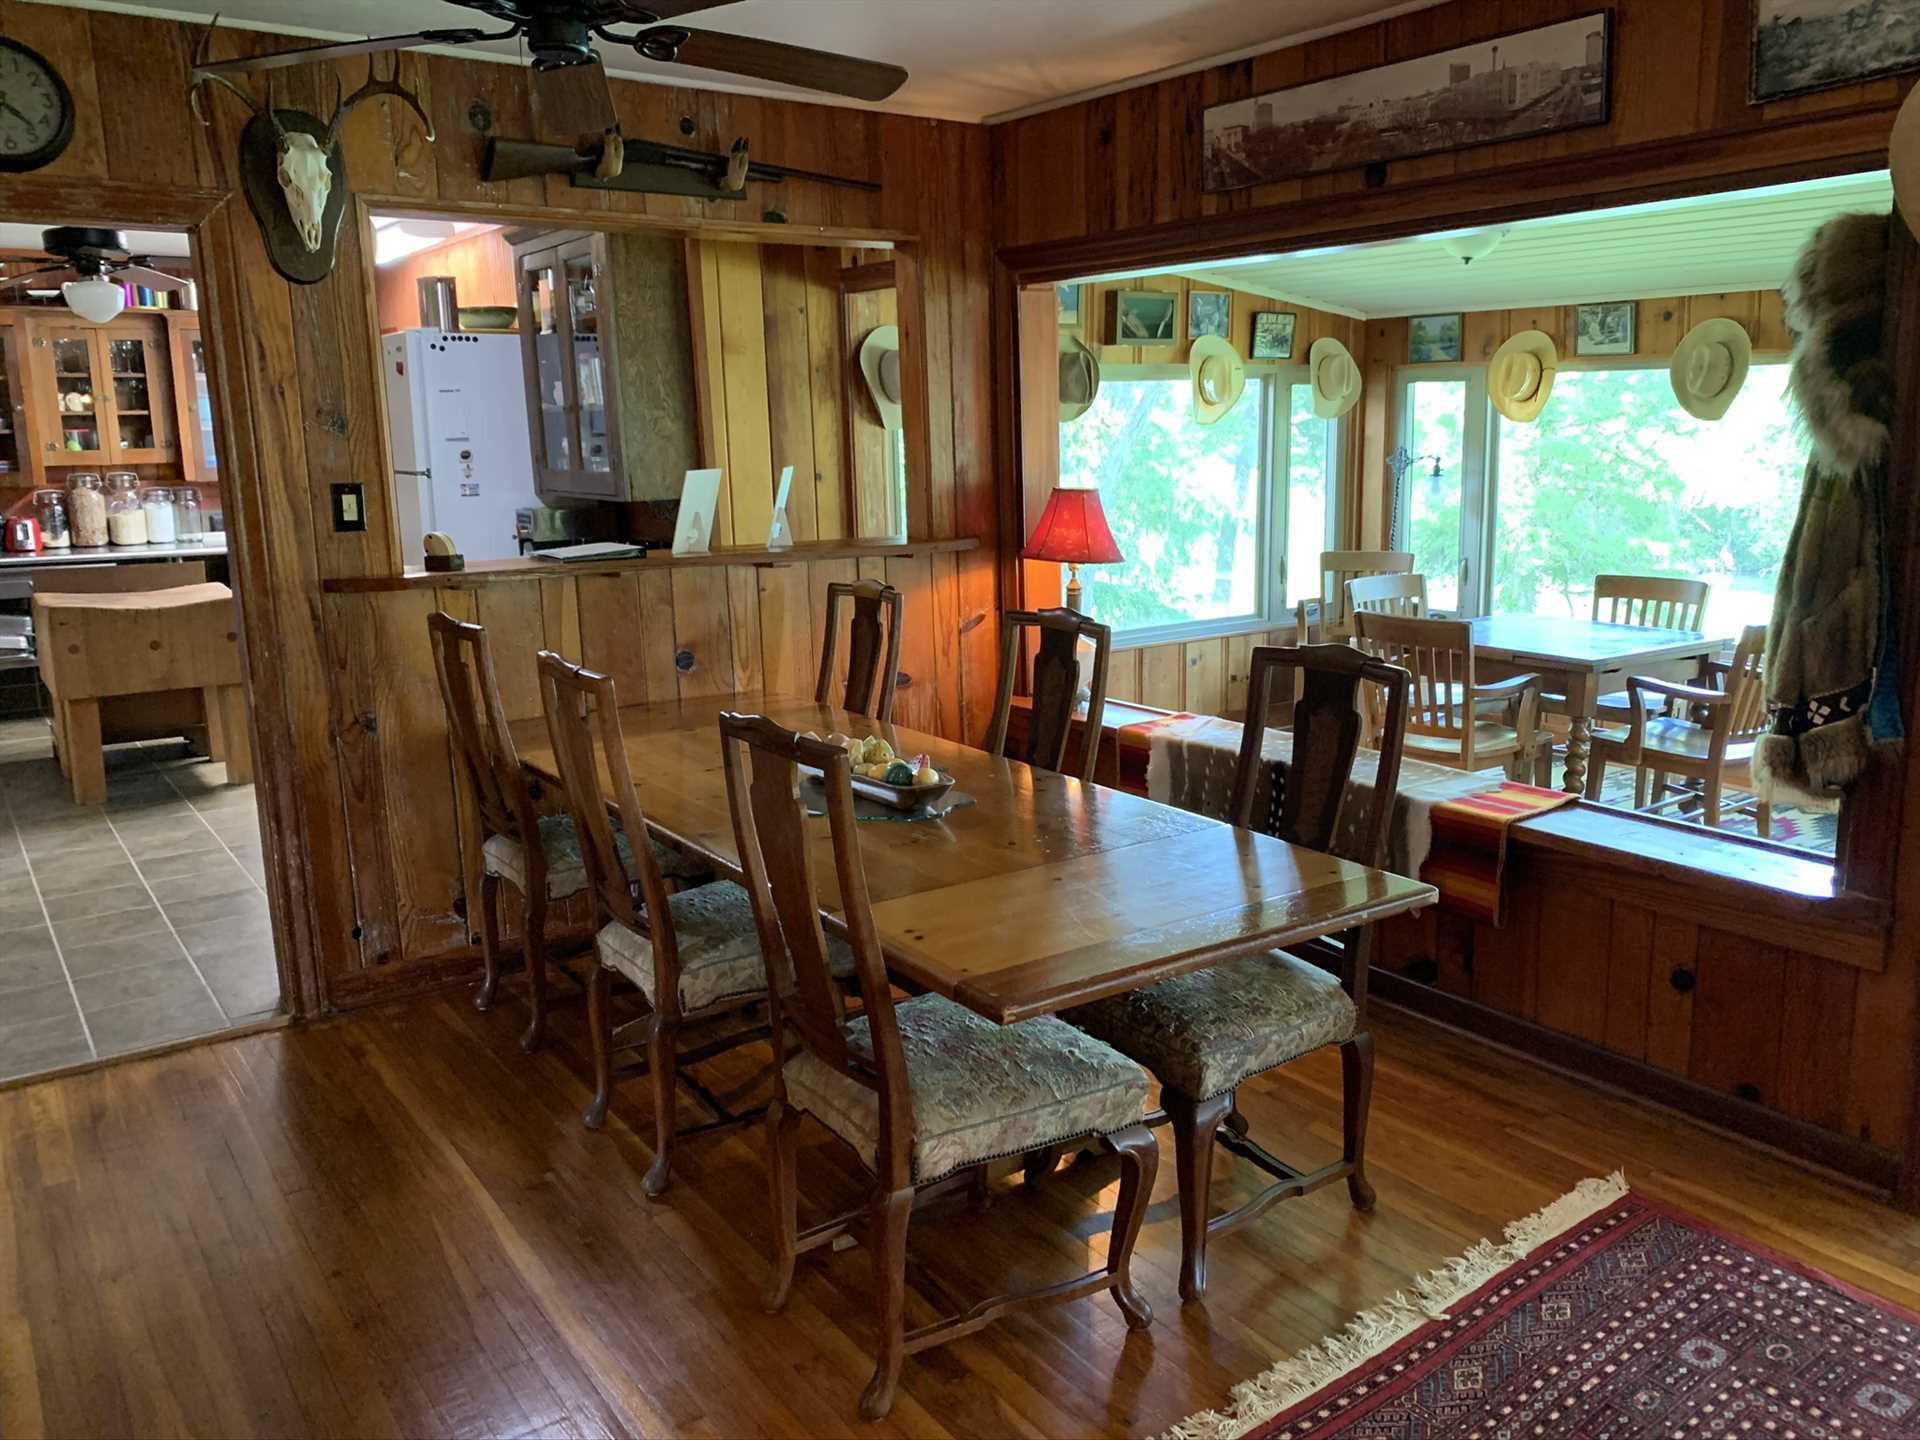 Warm woodwork accents the dining area, a space that's also great for playing games and socializing.